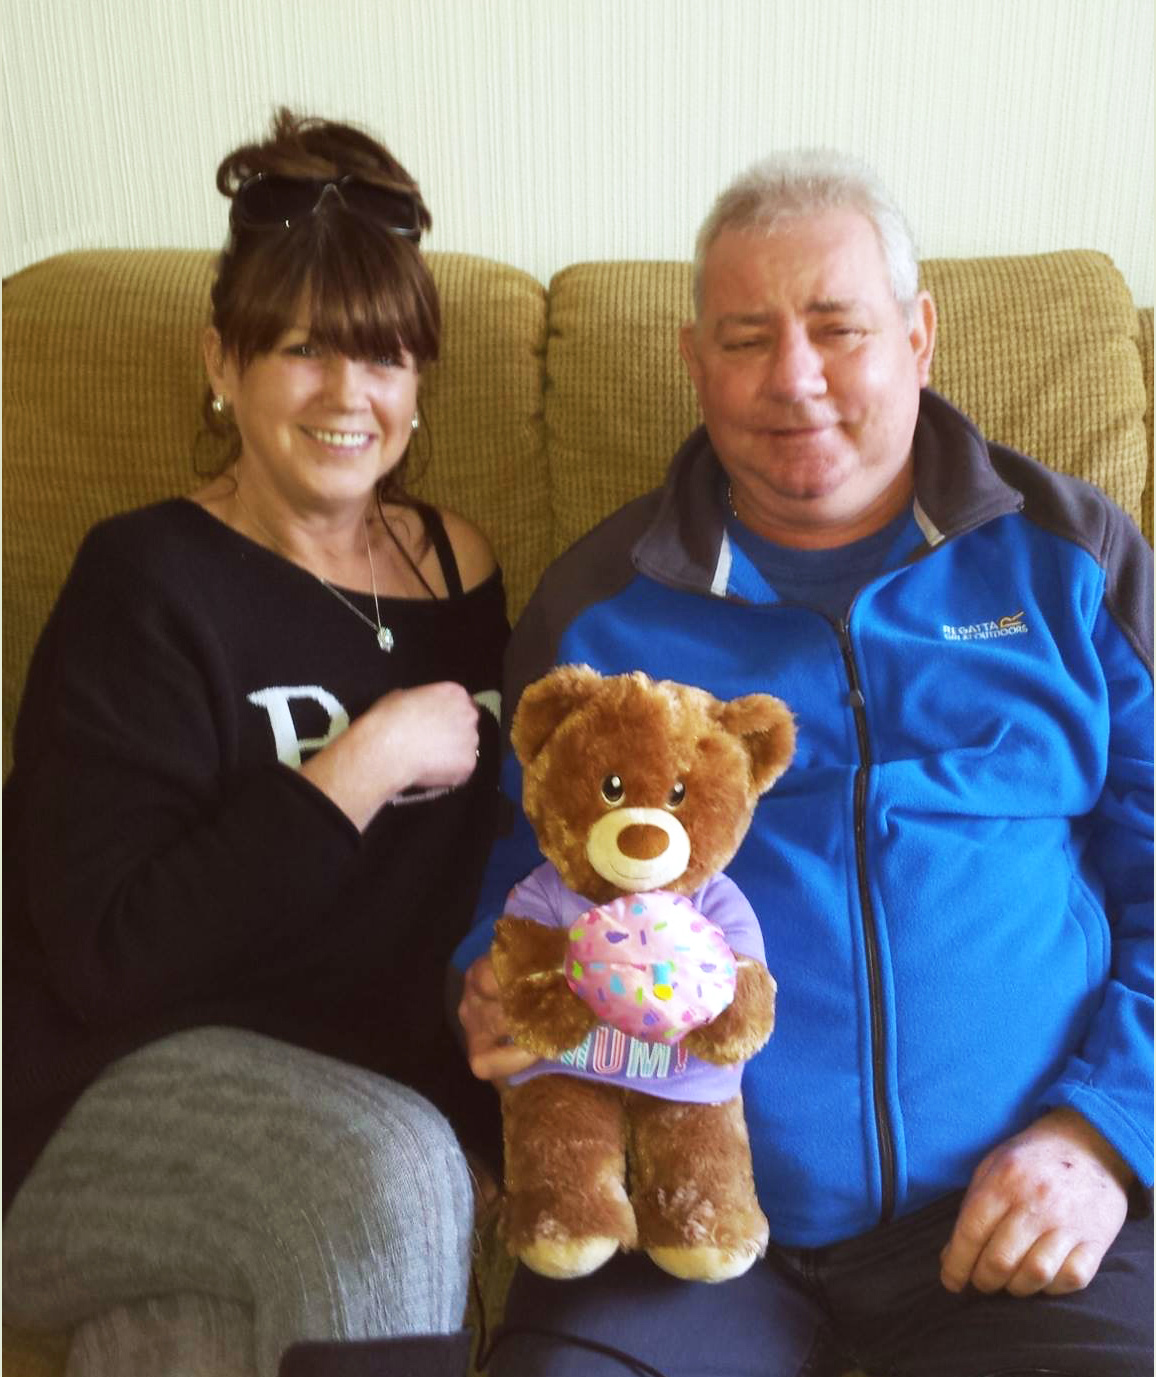 Den, the recipient of Jack's heart, gives Dona a teddy bear with the recording of Jack's heartbeat inside.